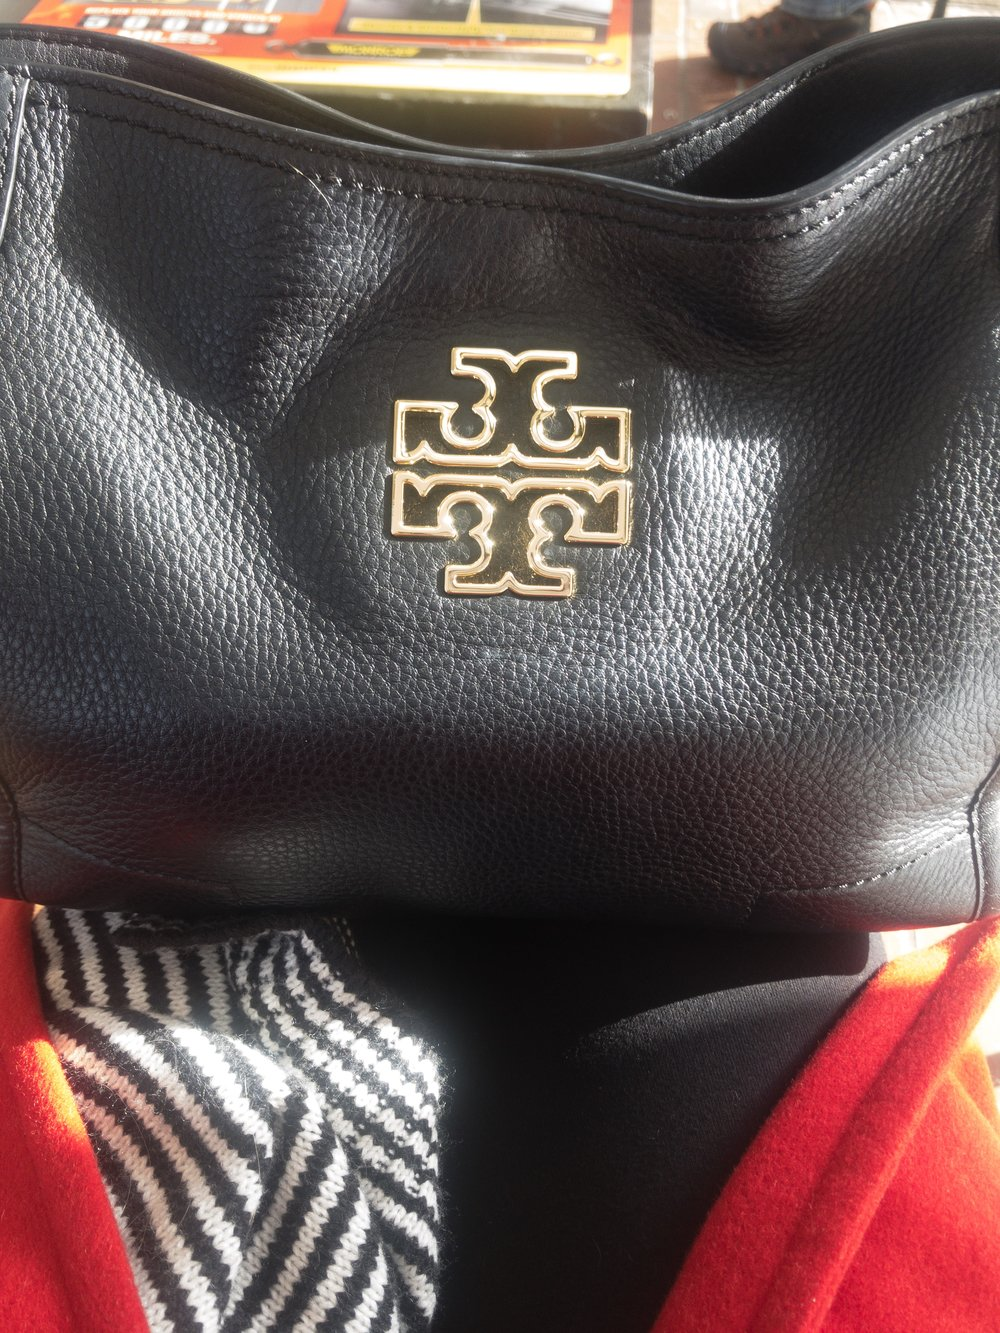 The Tory Burch bag completes the look!